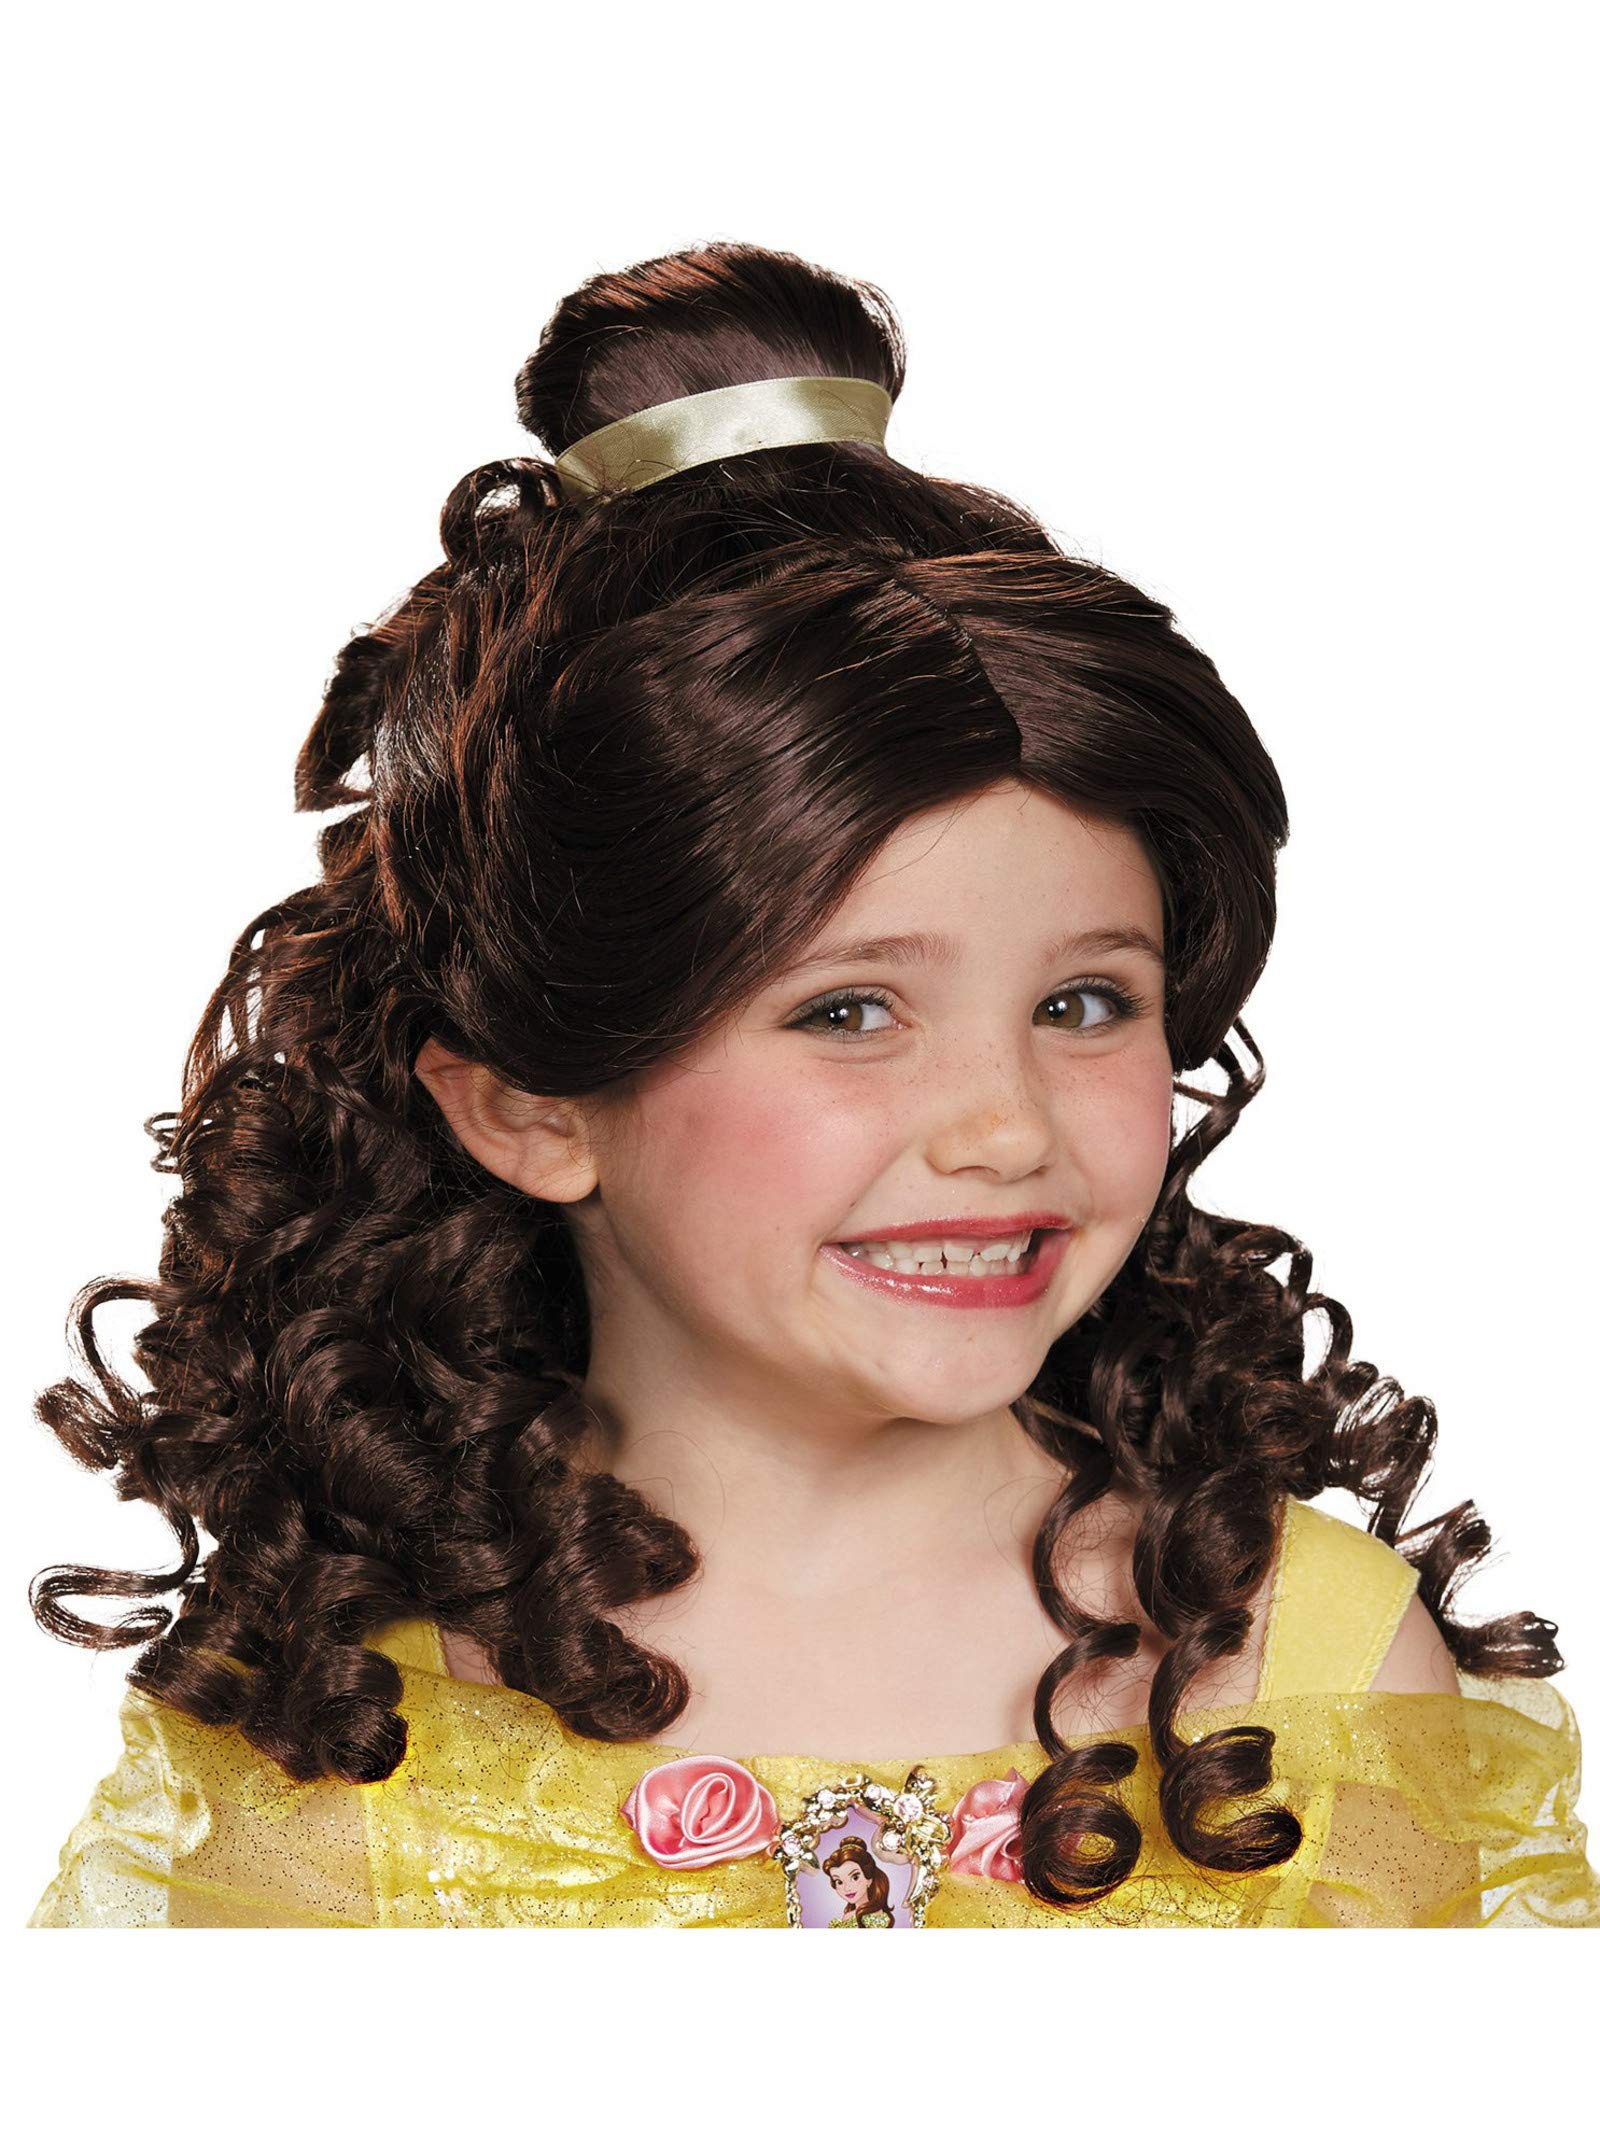 Disney Princess Belle Beauty & the Beast Girls' Wig by Disguise